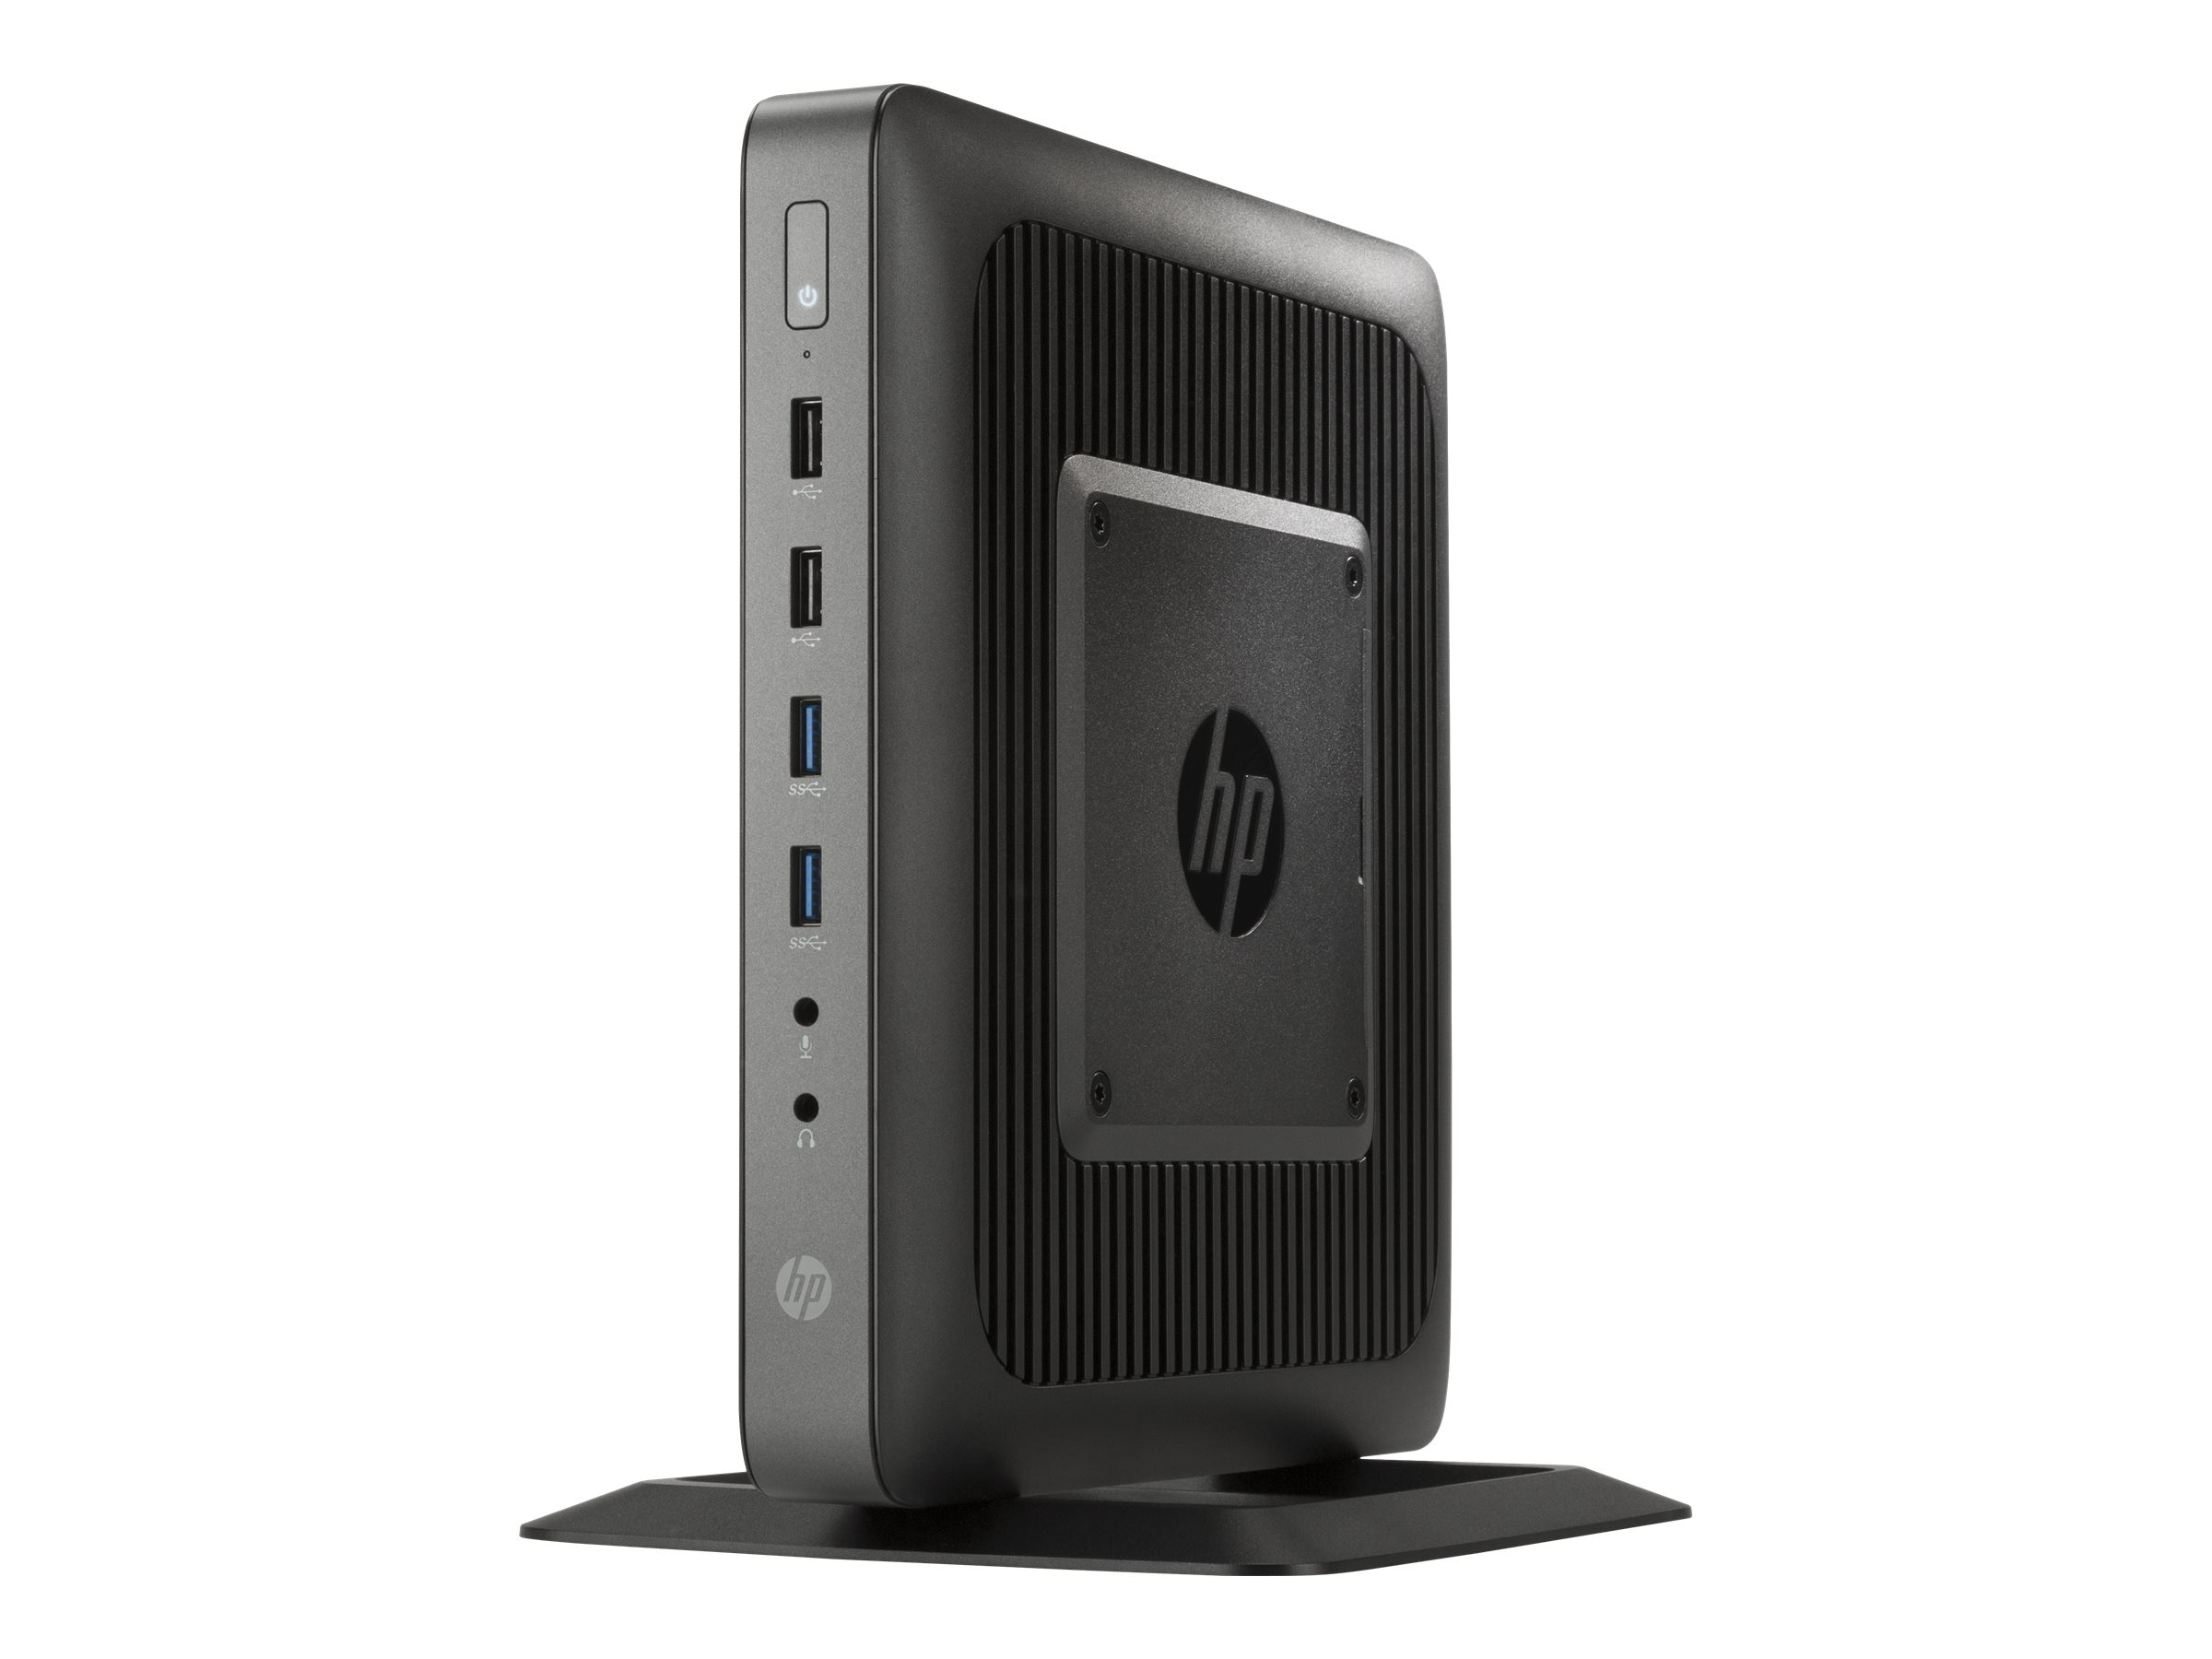 HP t620 Flexible Thin Client AMD QC GX-415GA 1.5GHz 8GB 64GB Flash HD8330E ac BT VGA W10 IoT